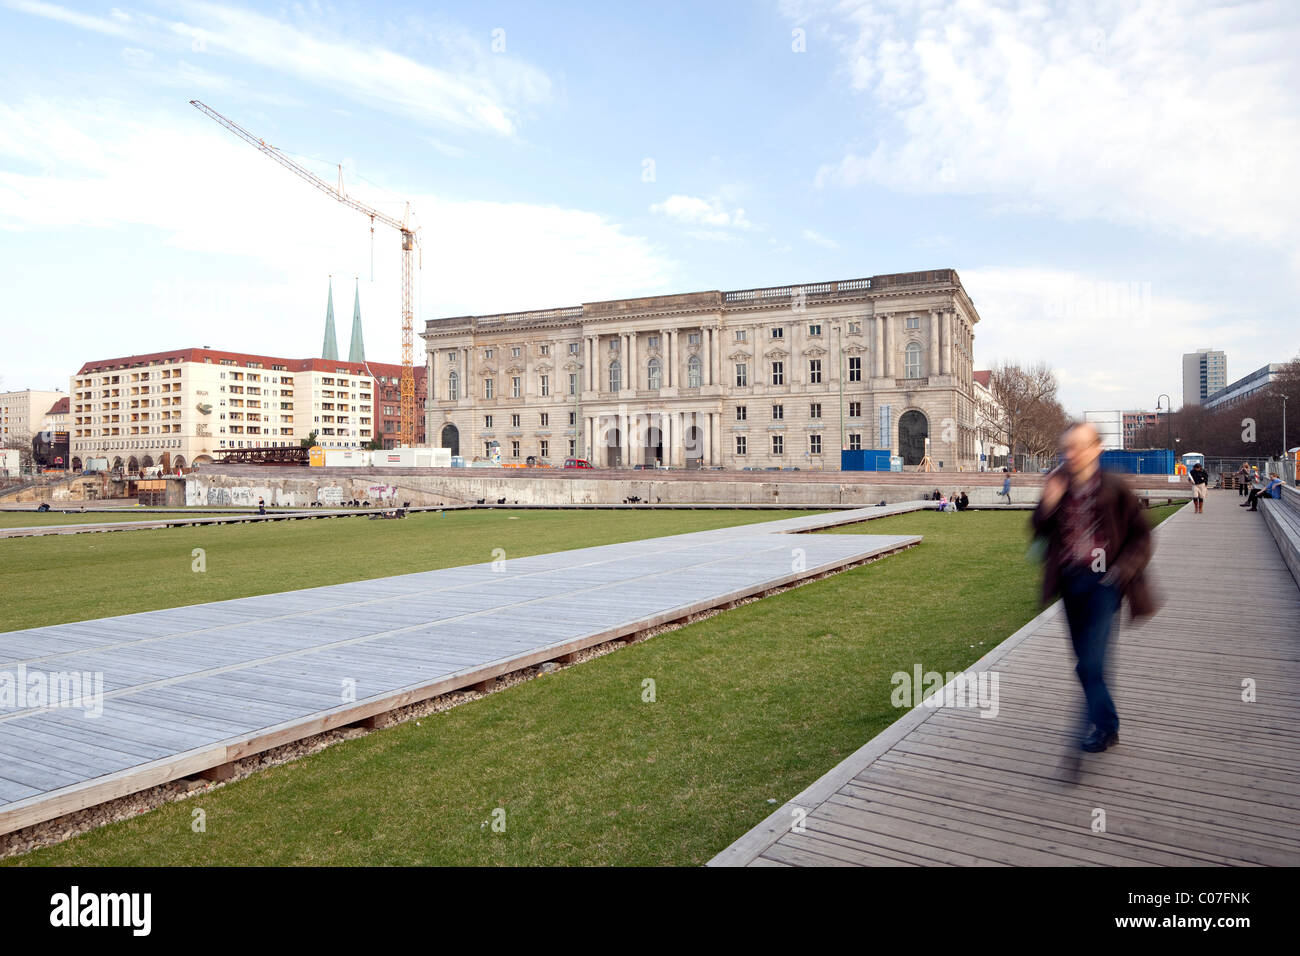 Schlossplatz square, temporary use as a park, Zentral- und Landesbibliothek Berlin library and foundation, Mitte - Stock Image